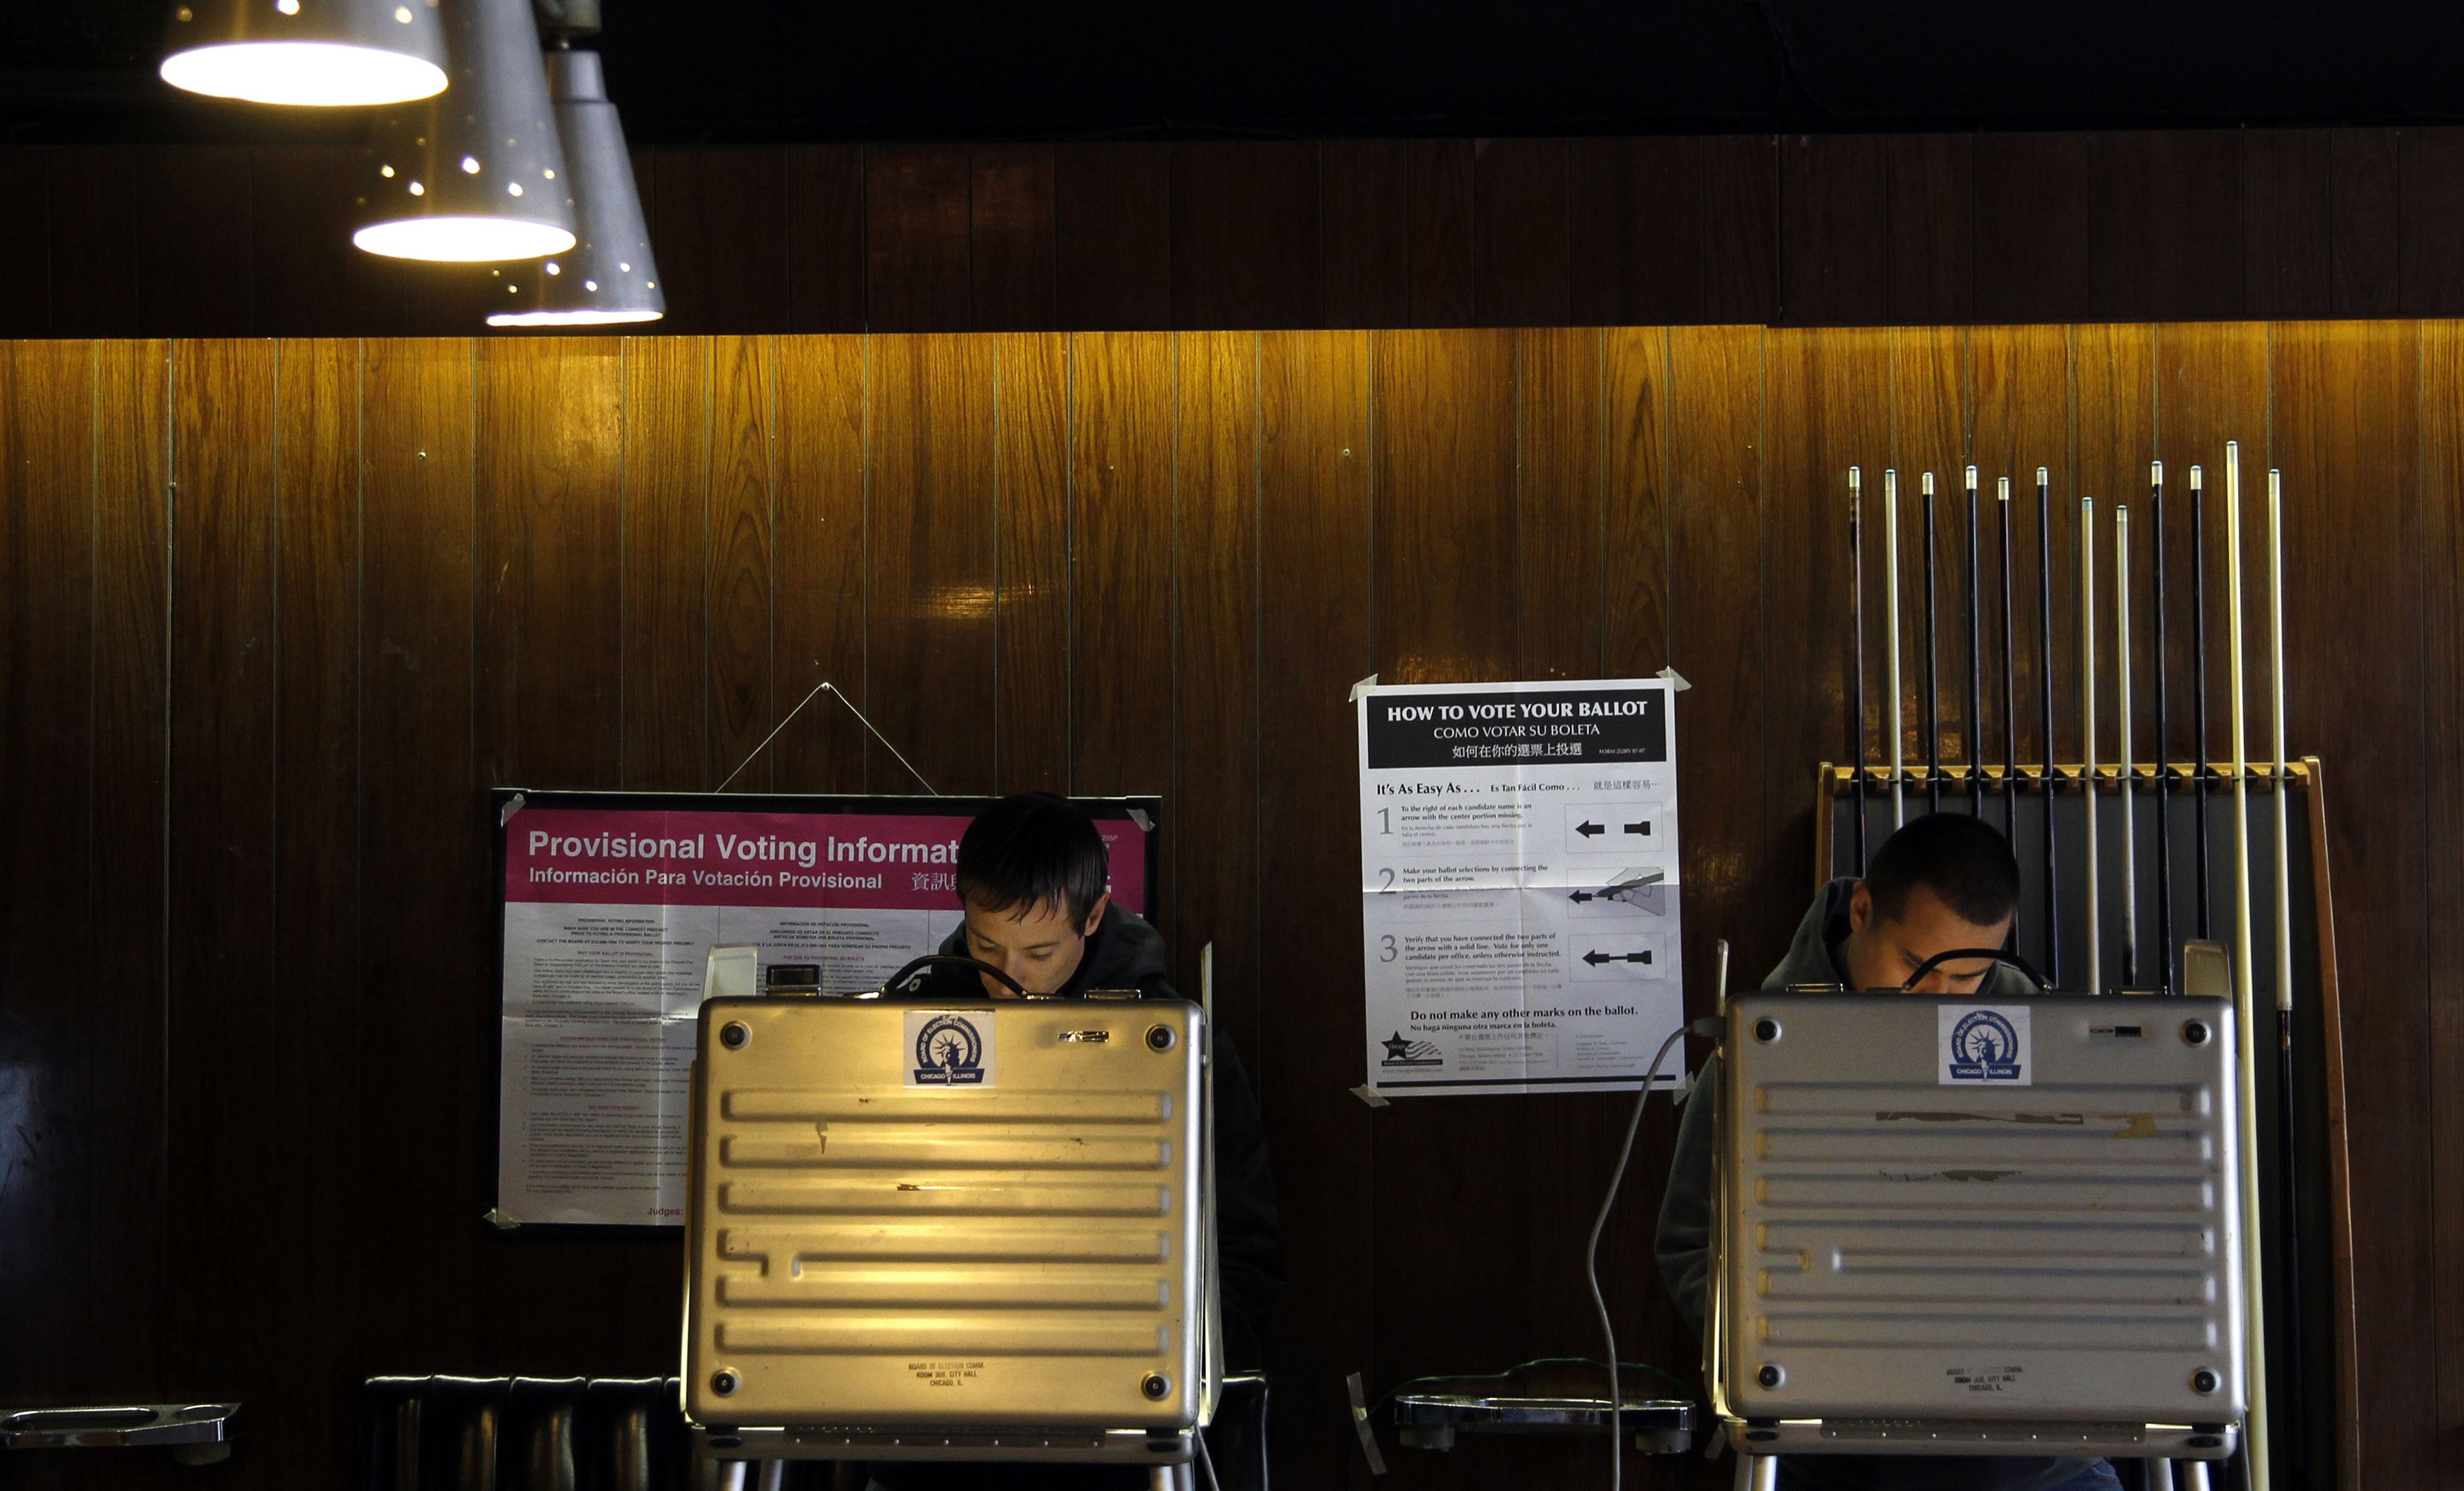 Voters cast their votes at Marie's Golden Cue pool hall during the U.S. presidential election in Chicago